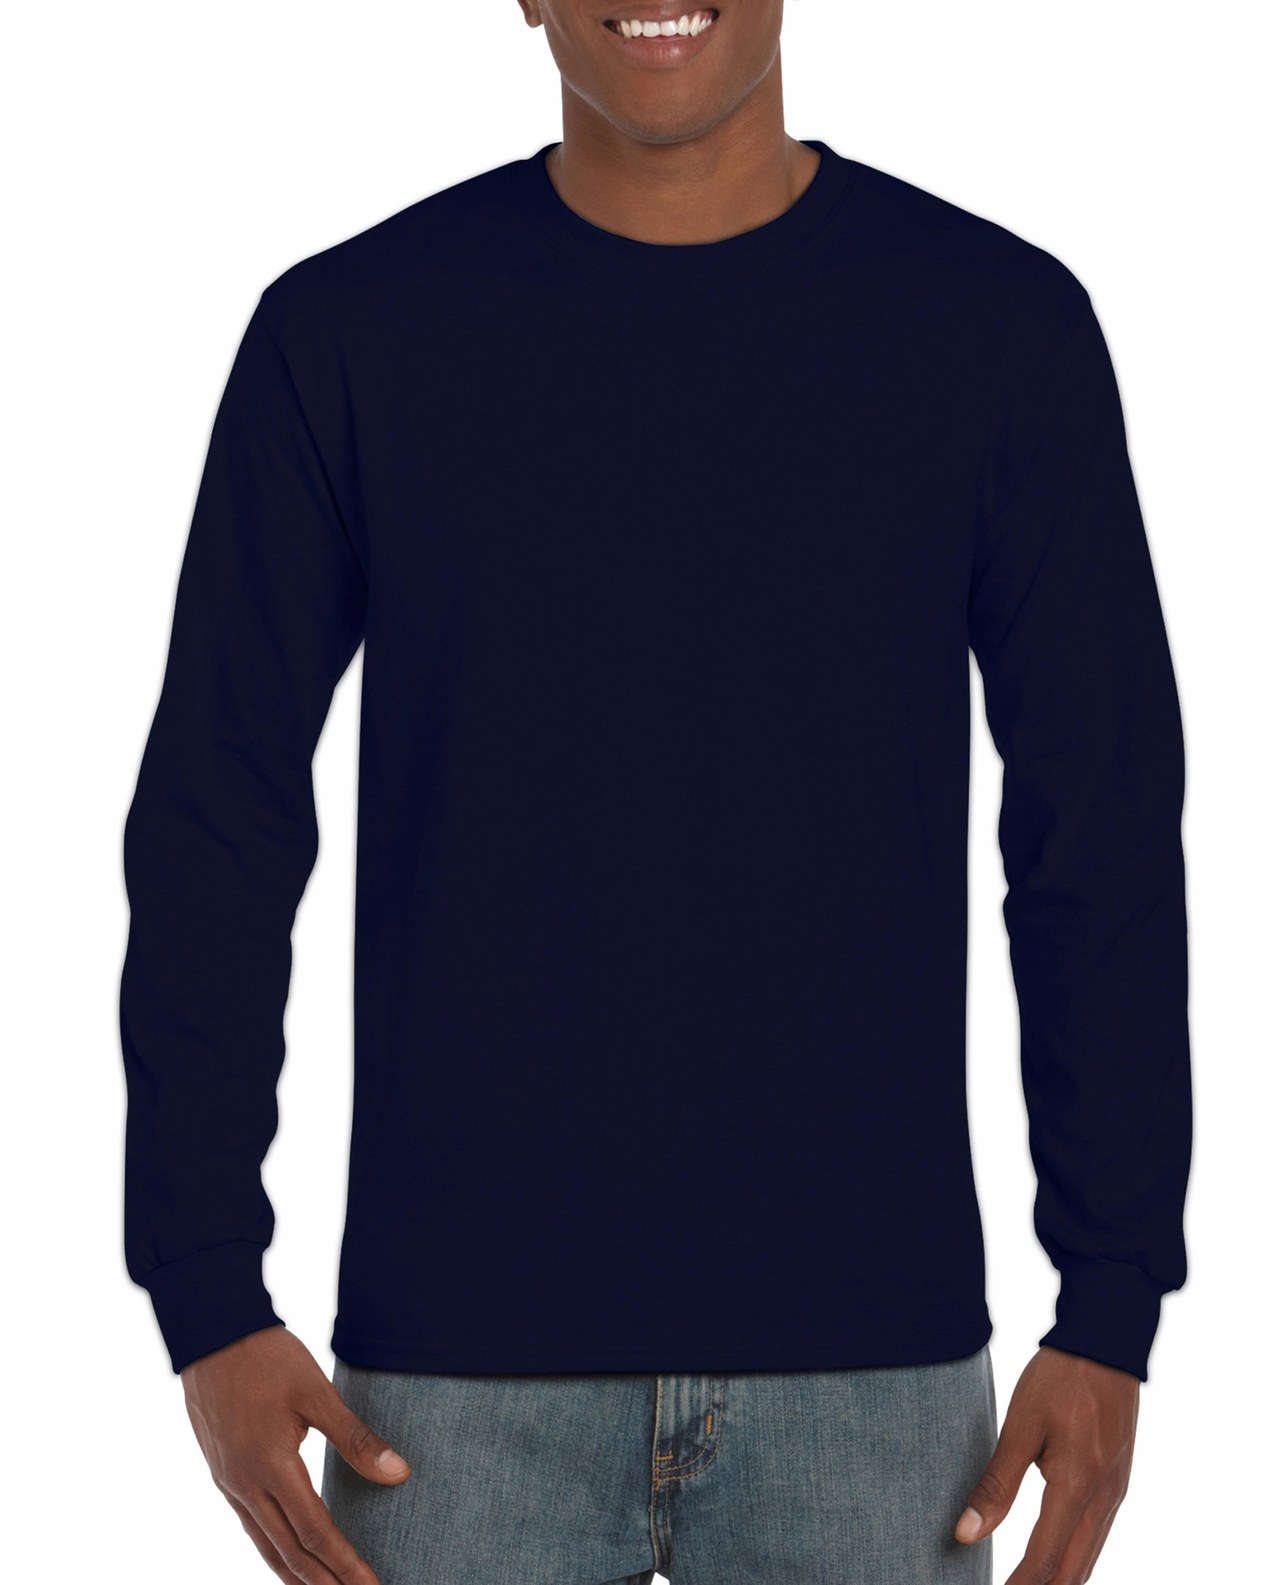 f49f79b2 2400 | Gildan® Ultra Cotton® | 6.0 oz/yd² | Adult Long Sleeve T ...